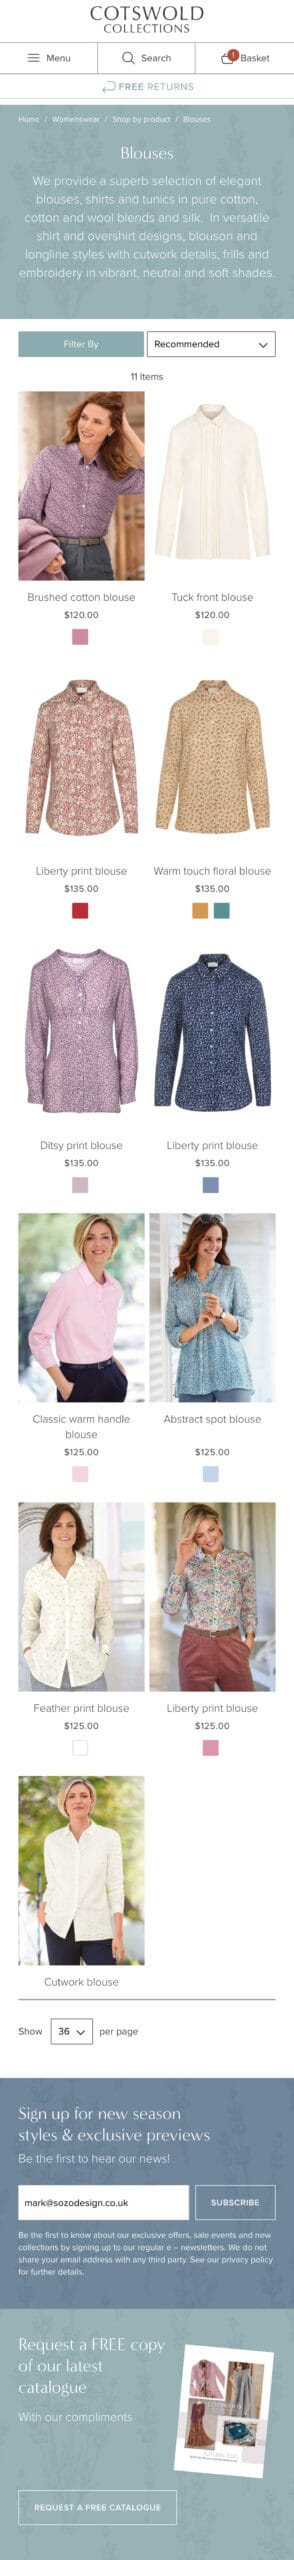 cotswold-collections-blouses-retina-scaled